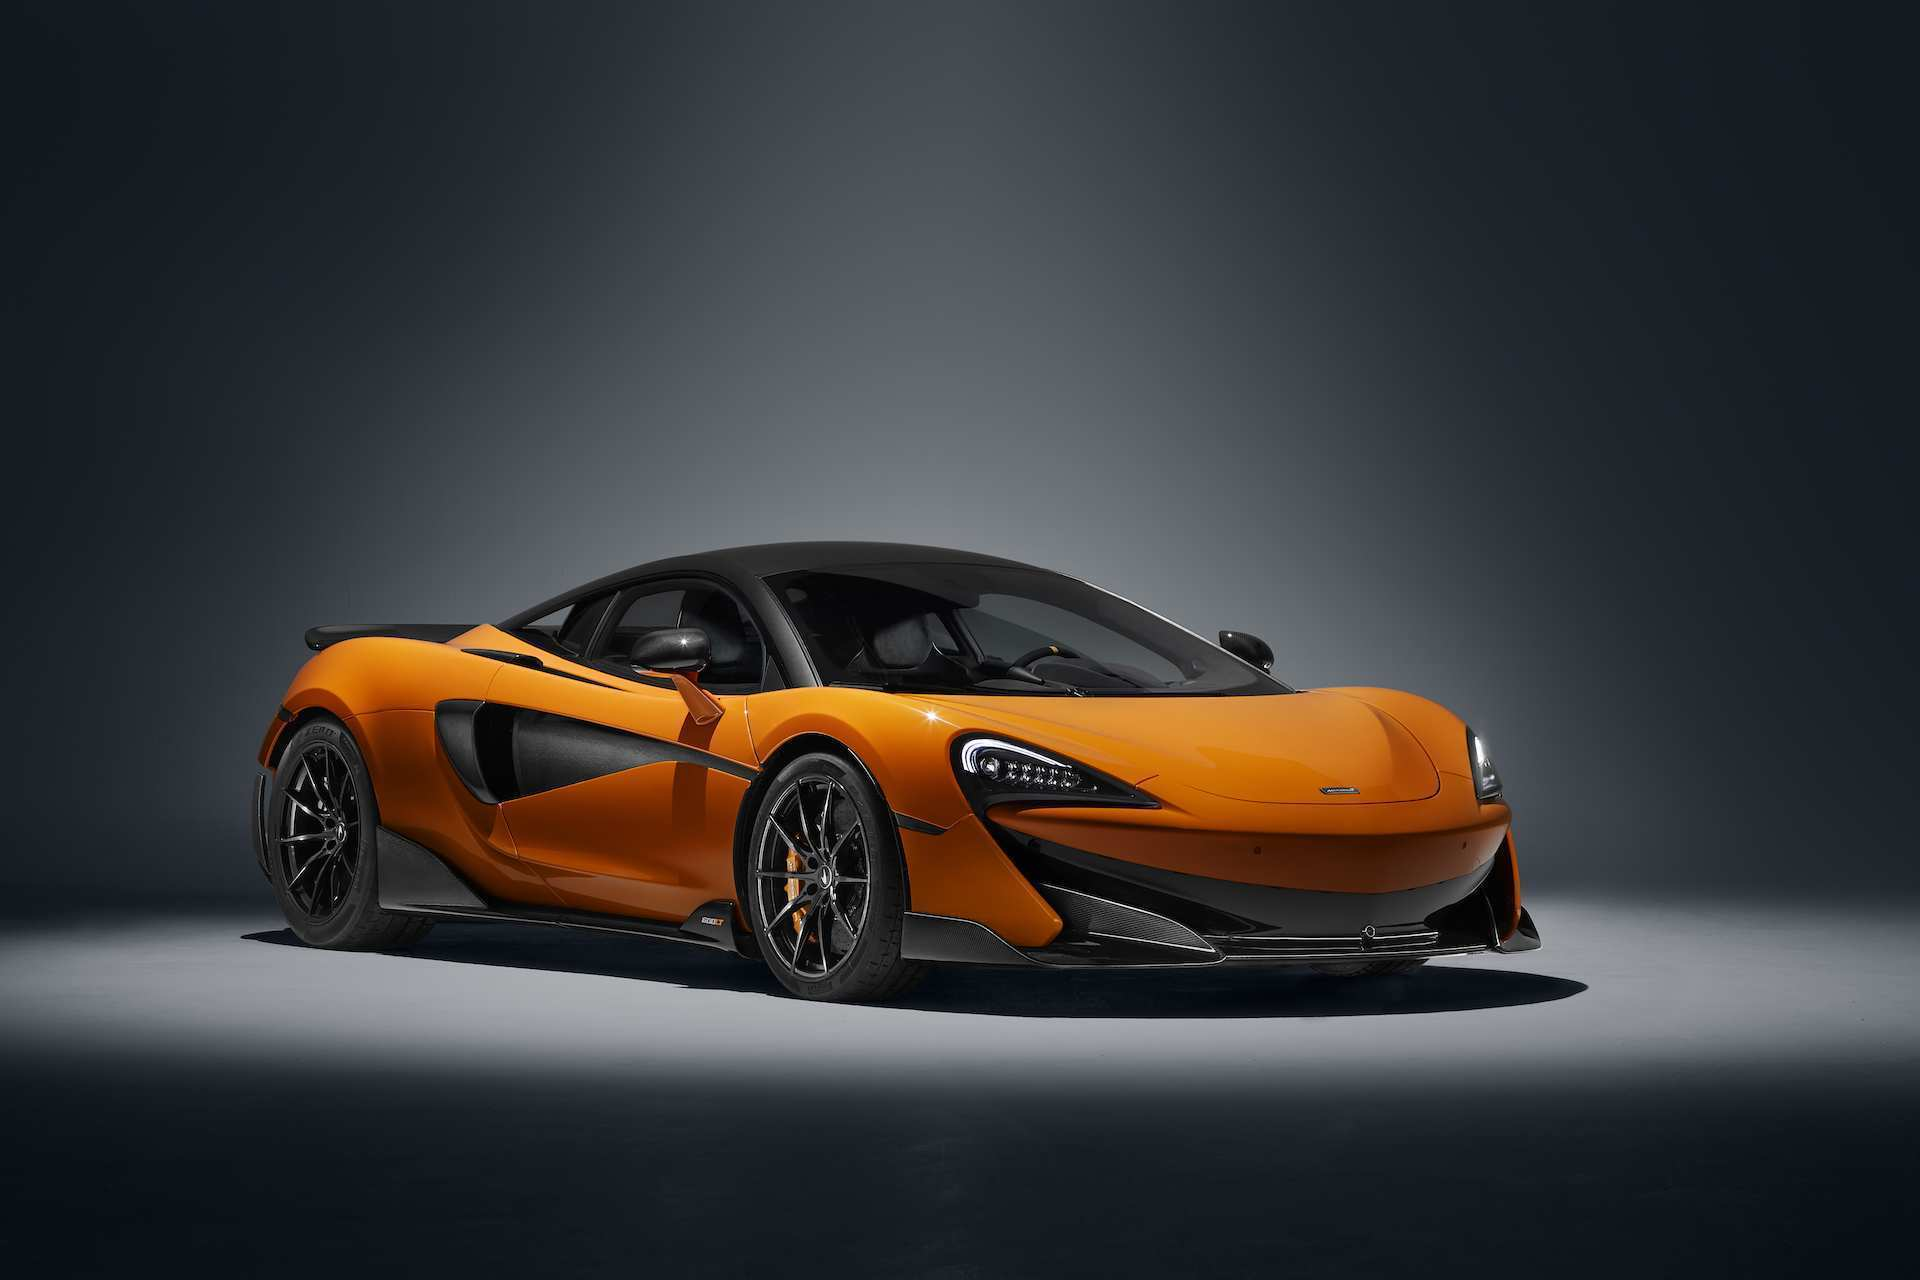 94 New 2019 Mclaren Price and Review by 2019 Mclaren